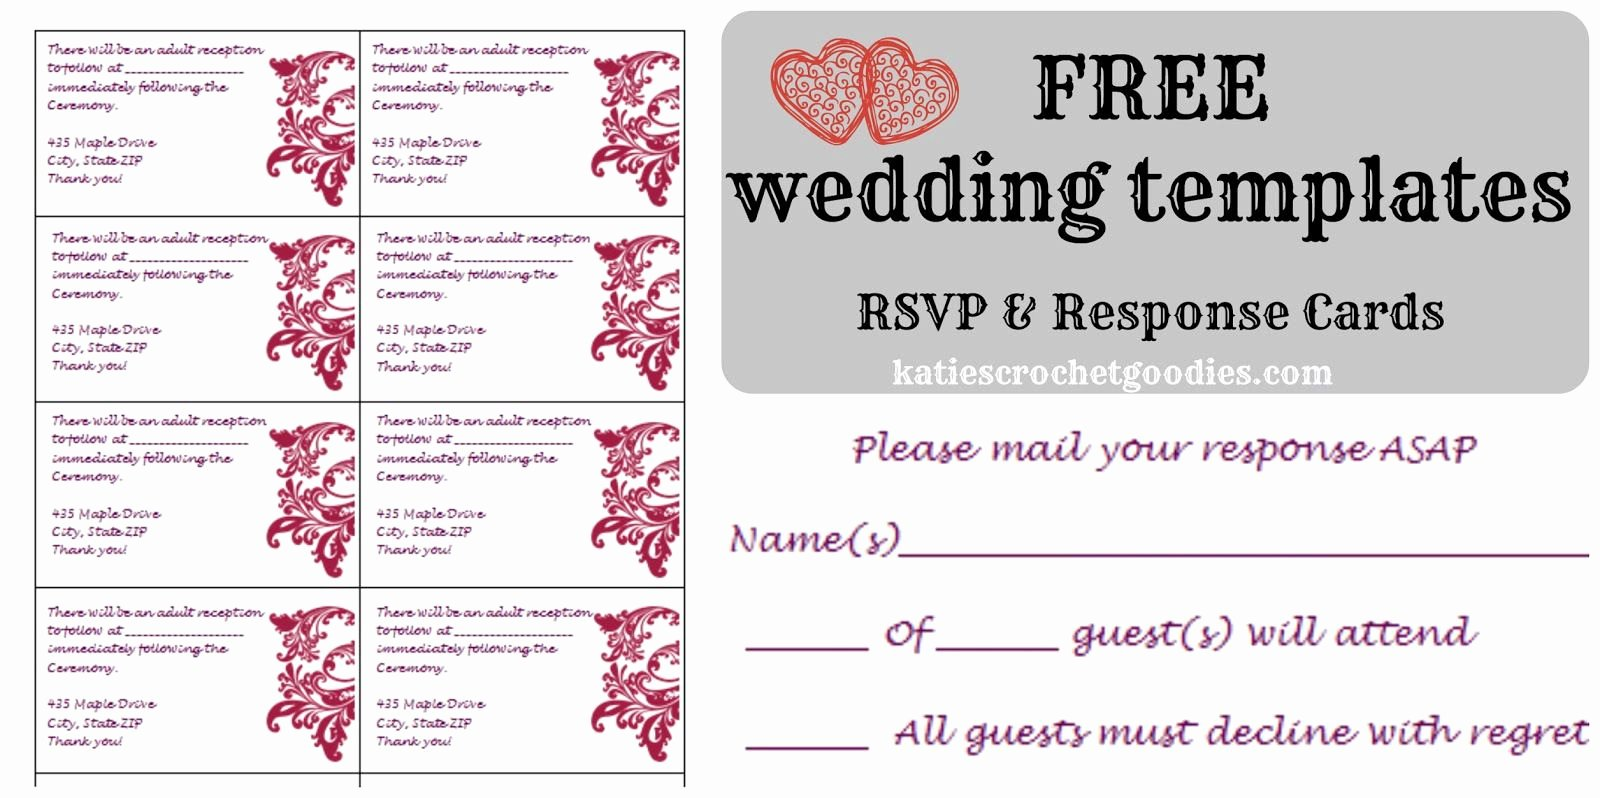 Wedding Rsvp Postcards Template Best Of Free Wedding Rsvp & Response Card Template Templat